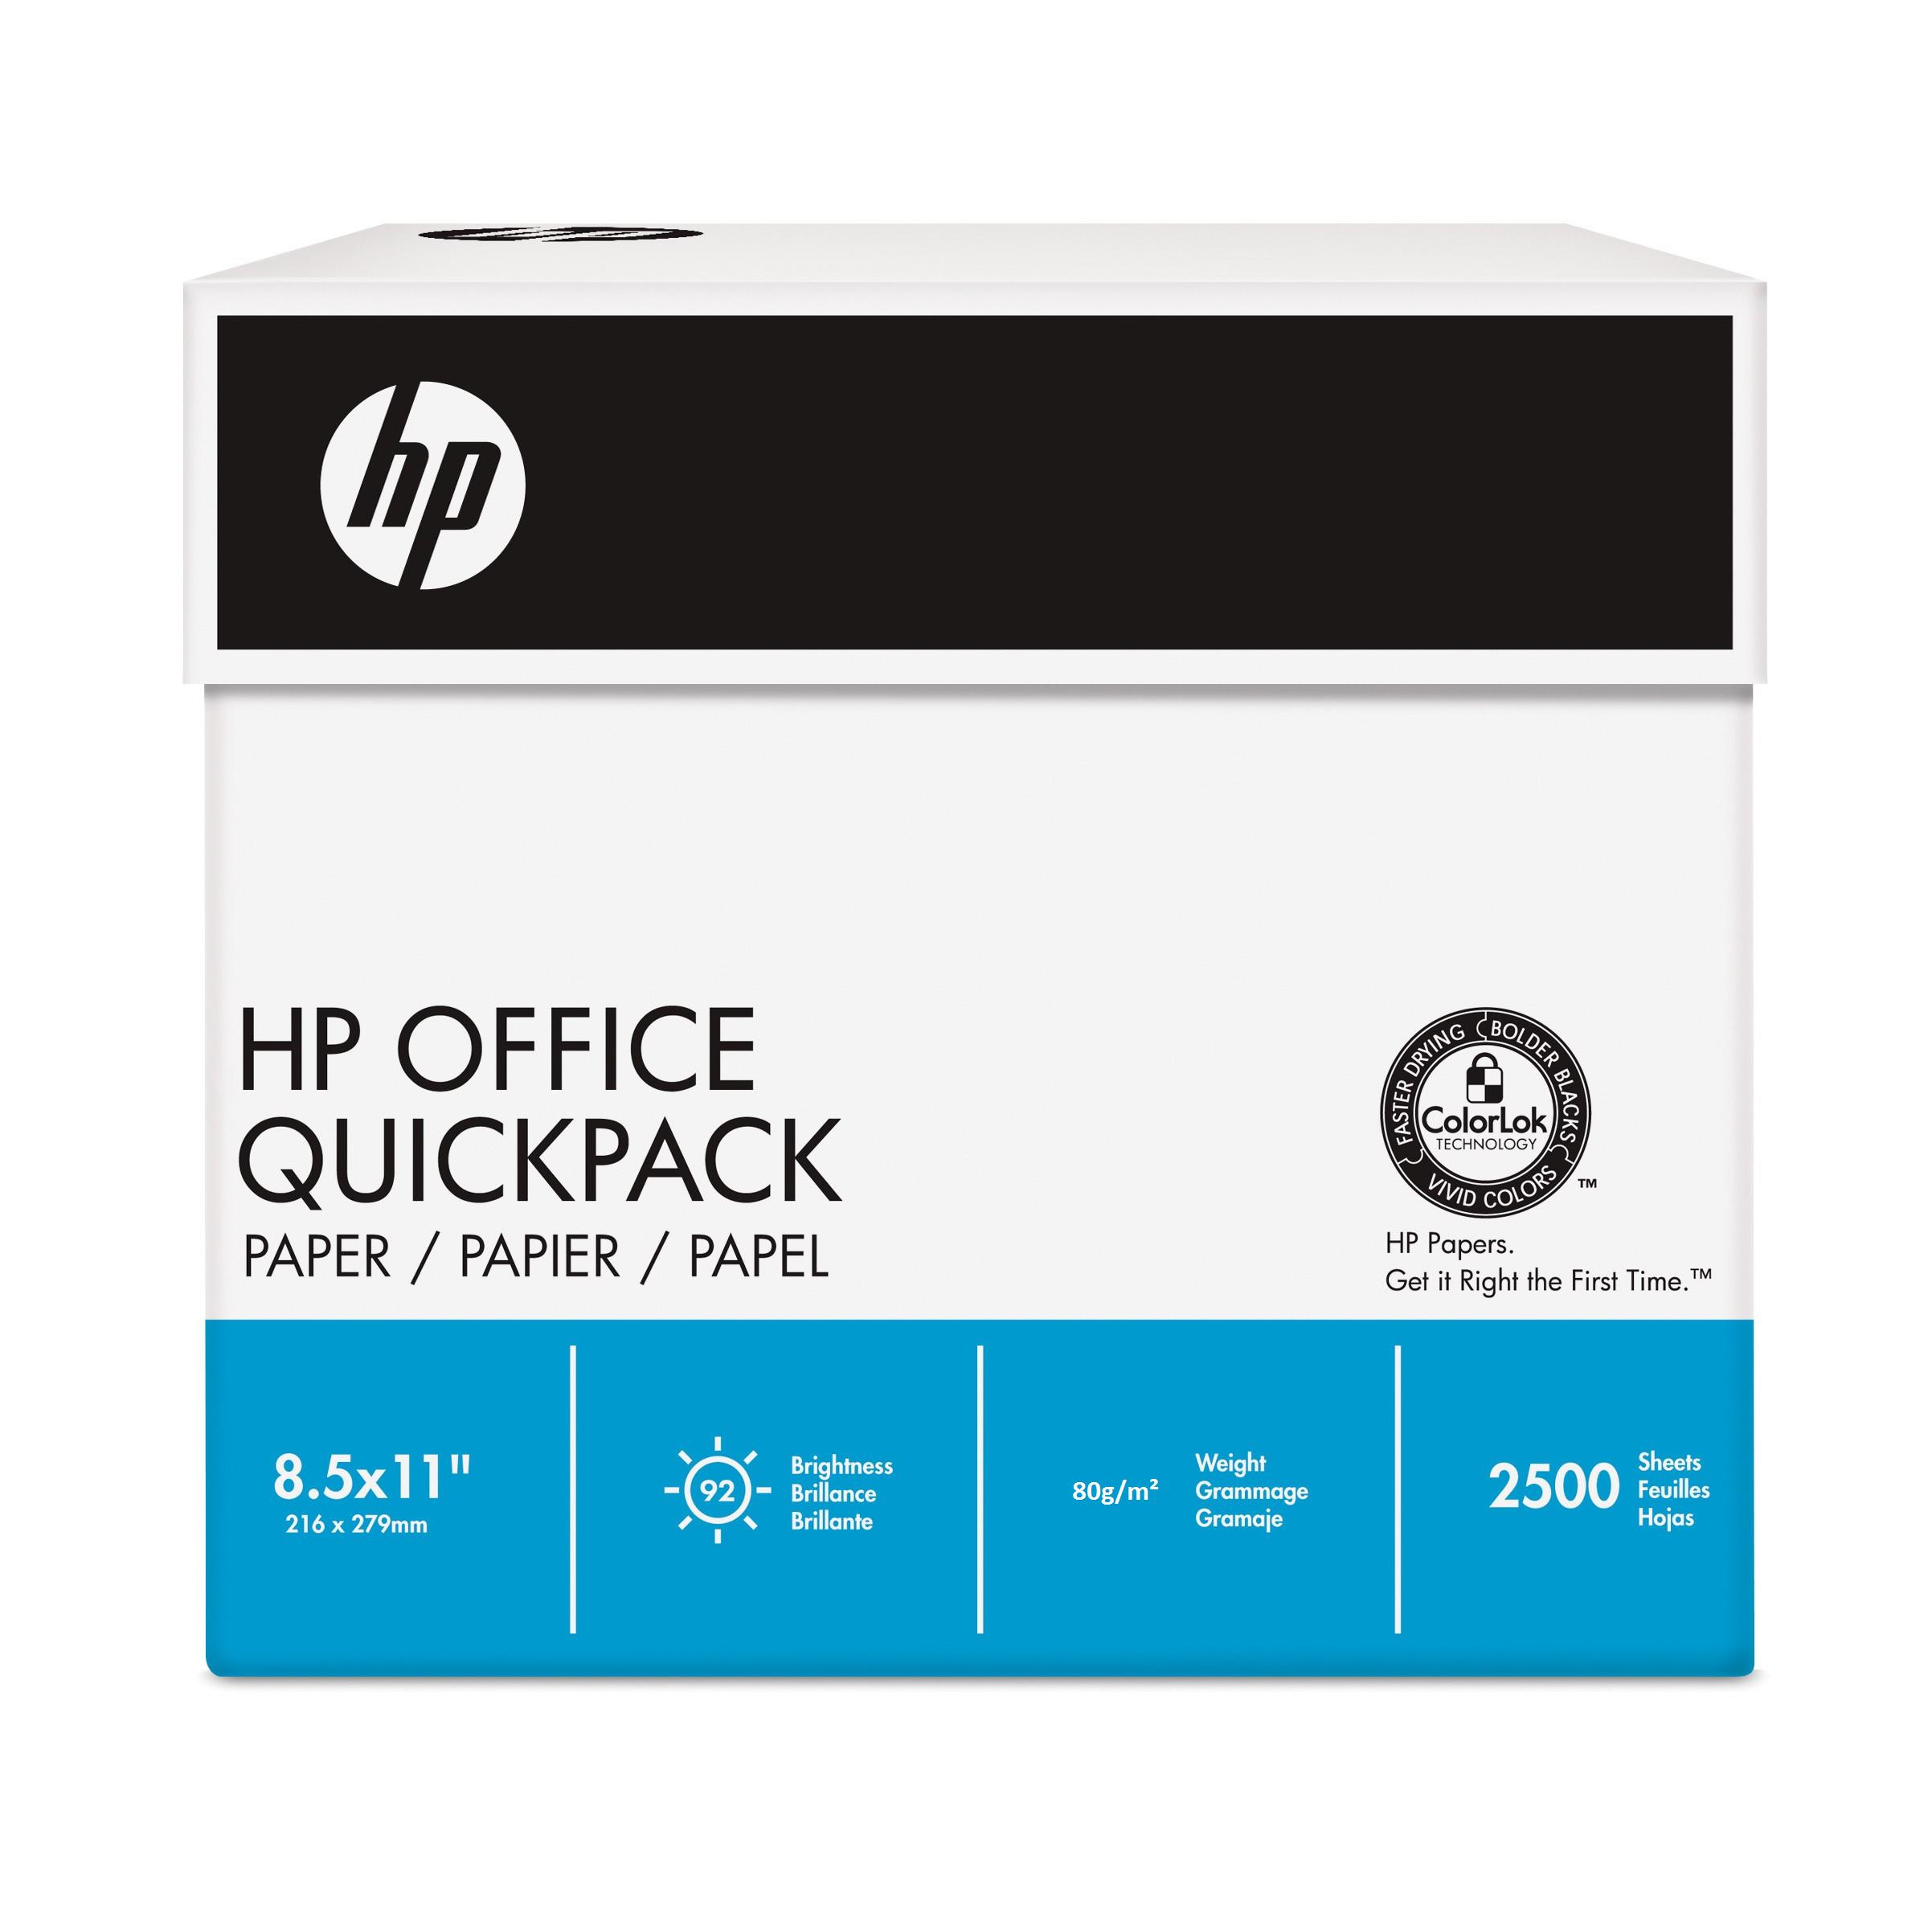 Image for Hewlett Packard [HP] Office Paper Multifunction No Wrap 80gsm A4 White Ref HPF0317QPCL [2500 Sheets]